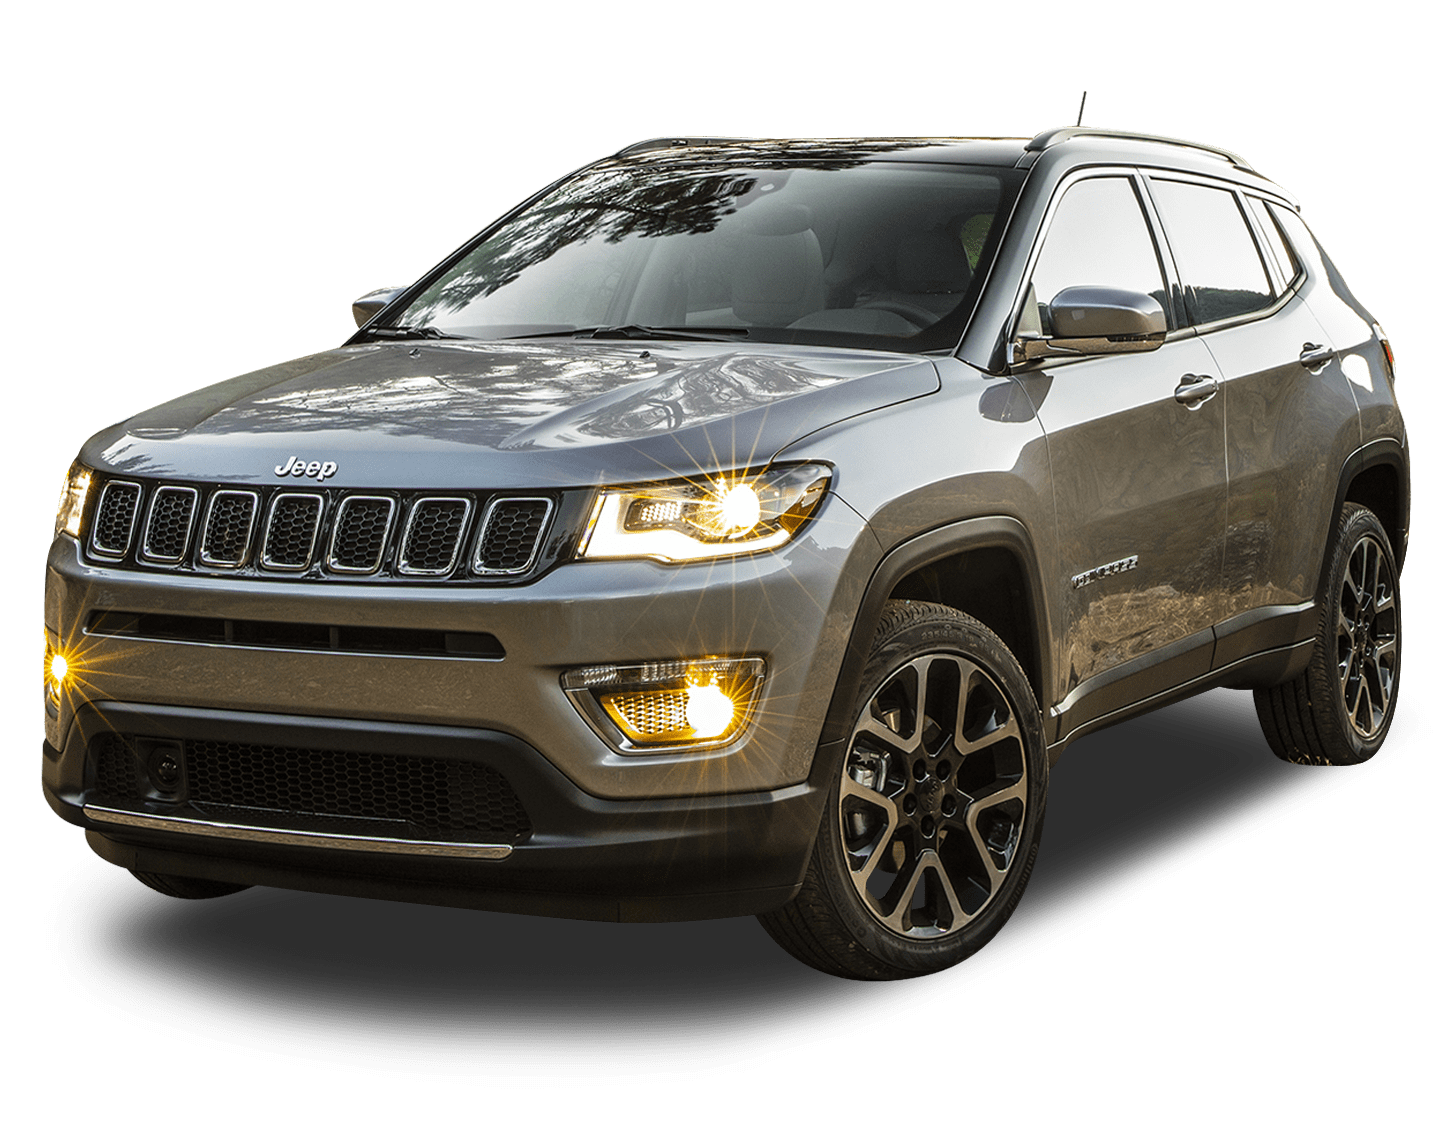 100 jeep compass limited black jeep compass 2008 black 2018 jeep compass stan mcnabb. Black Bedroom Furniture Sets. Home Design Ideas